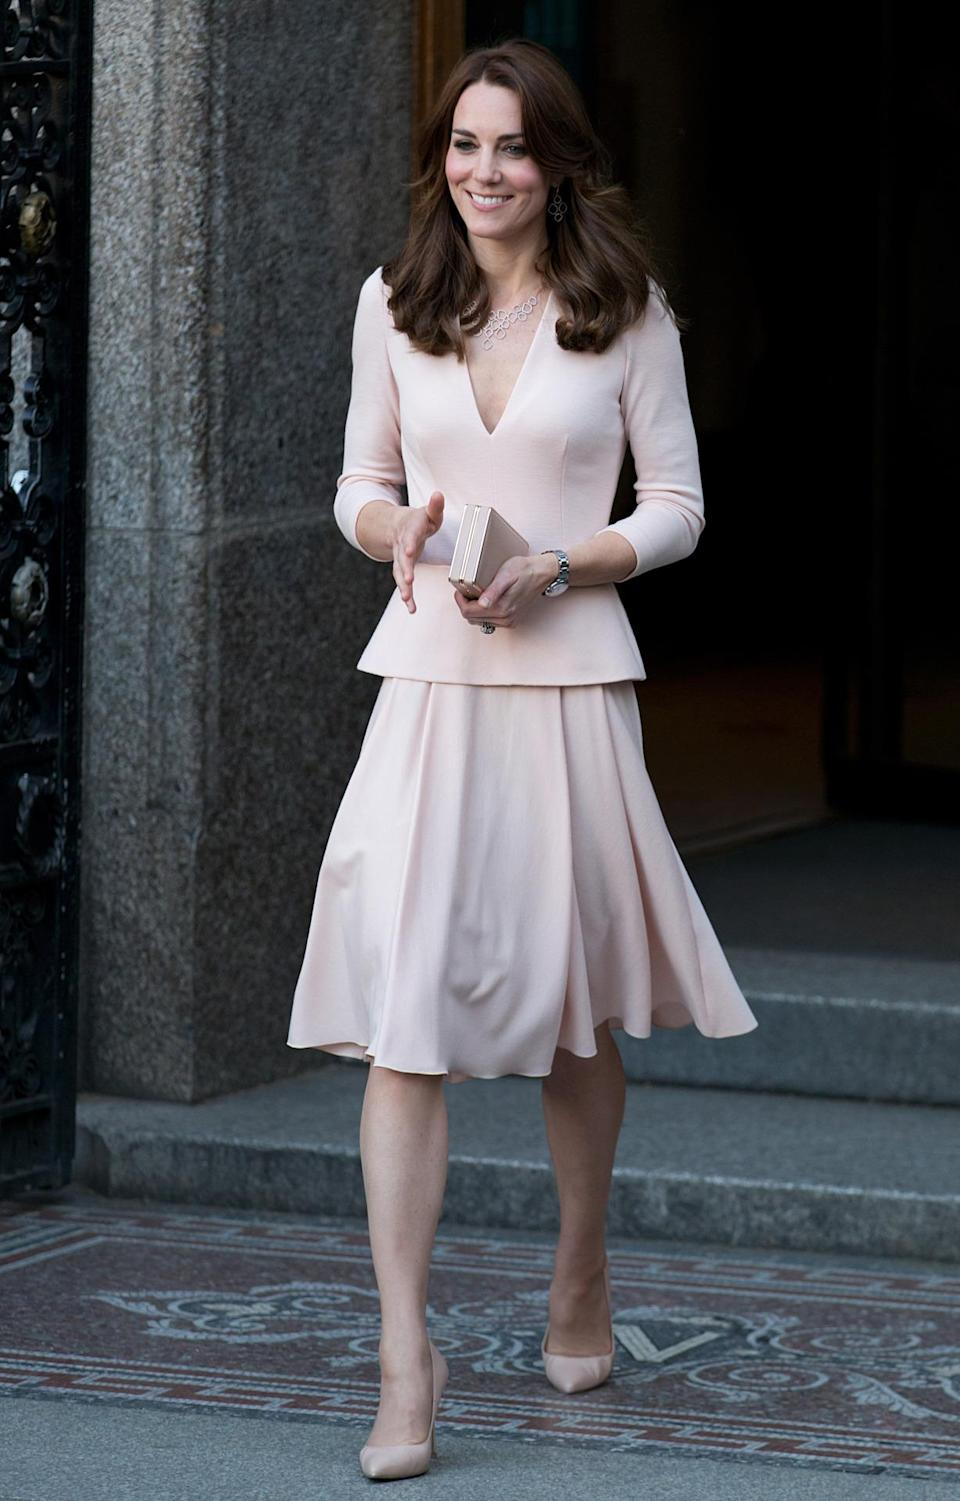 <p>Kate's trip to a Vogue exhibition at the National Portrait Gallery saw the Duchess in a sweet pink peplum dress by one of her favourite labels, Alexander McQueen. As usual, an L.K. Bennett clutch and shoes completed her ensemble.</p><p><i>[Photo: PA]</i></p>